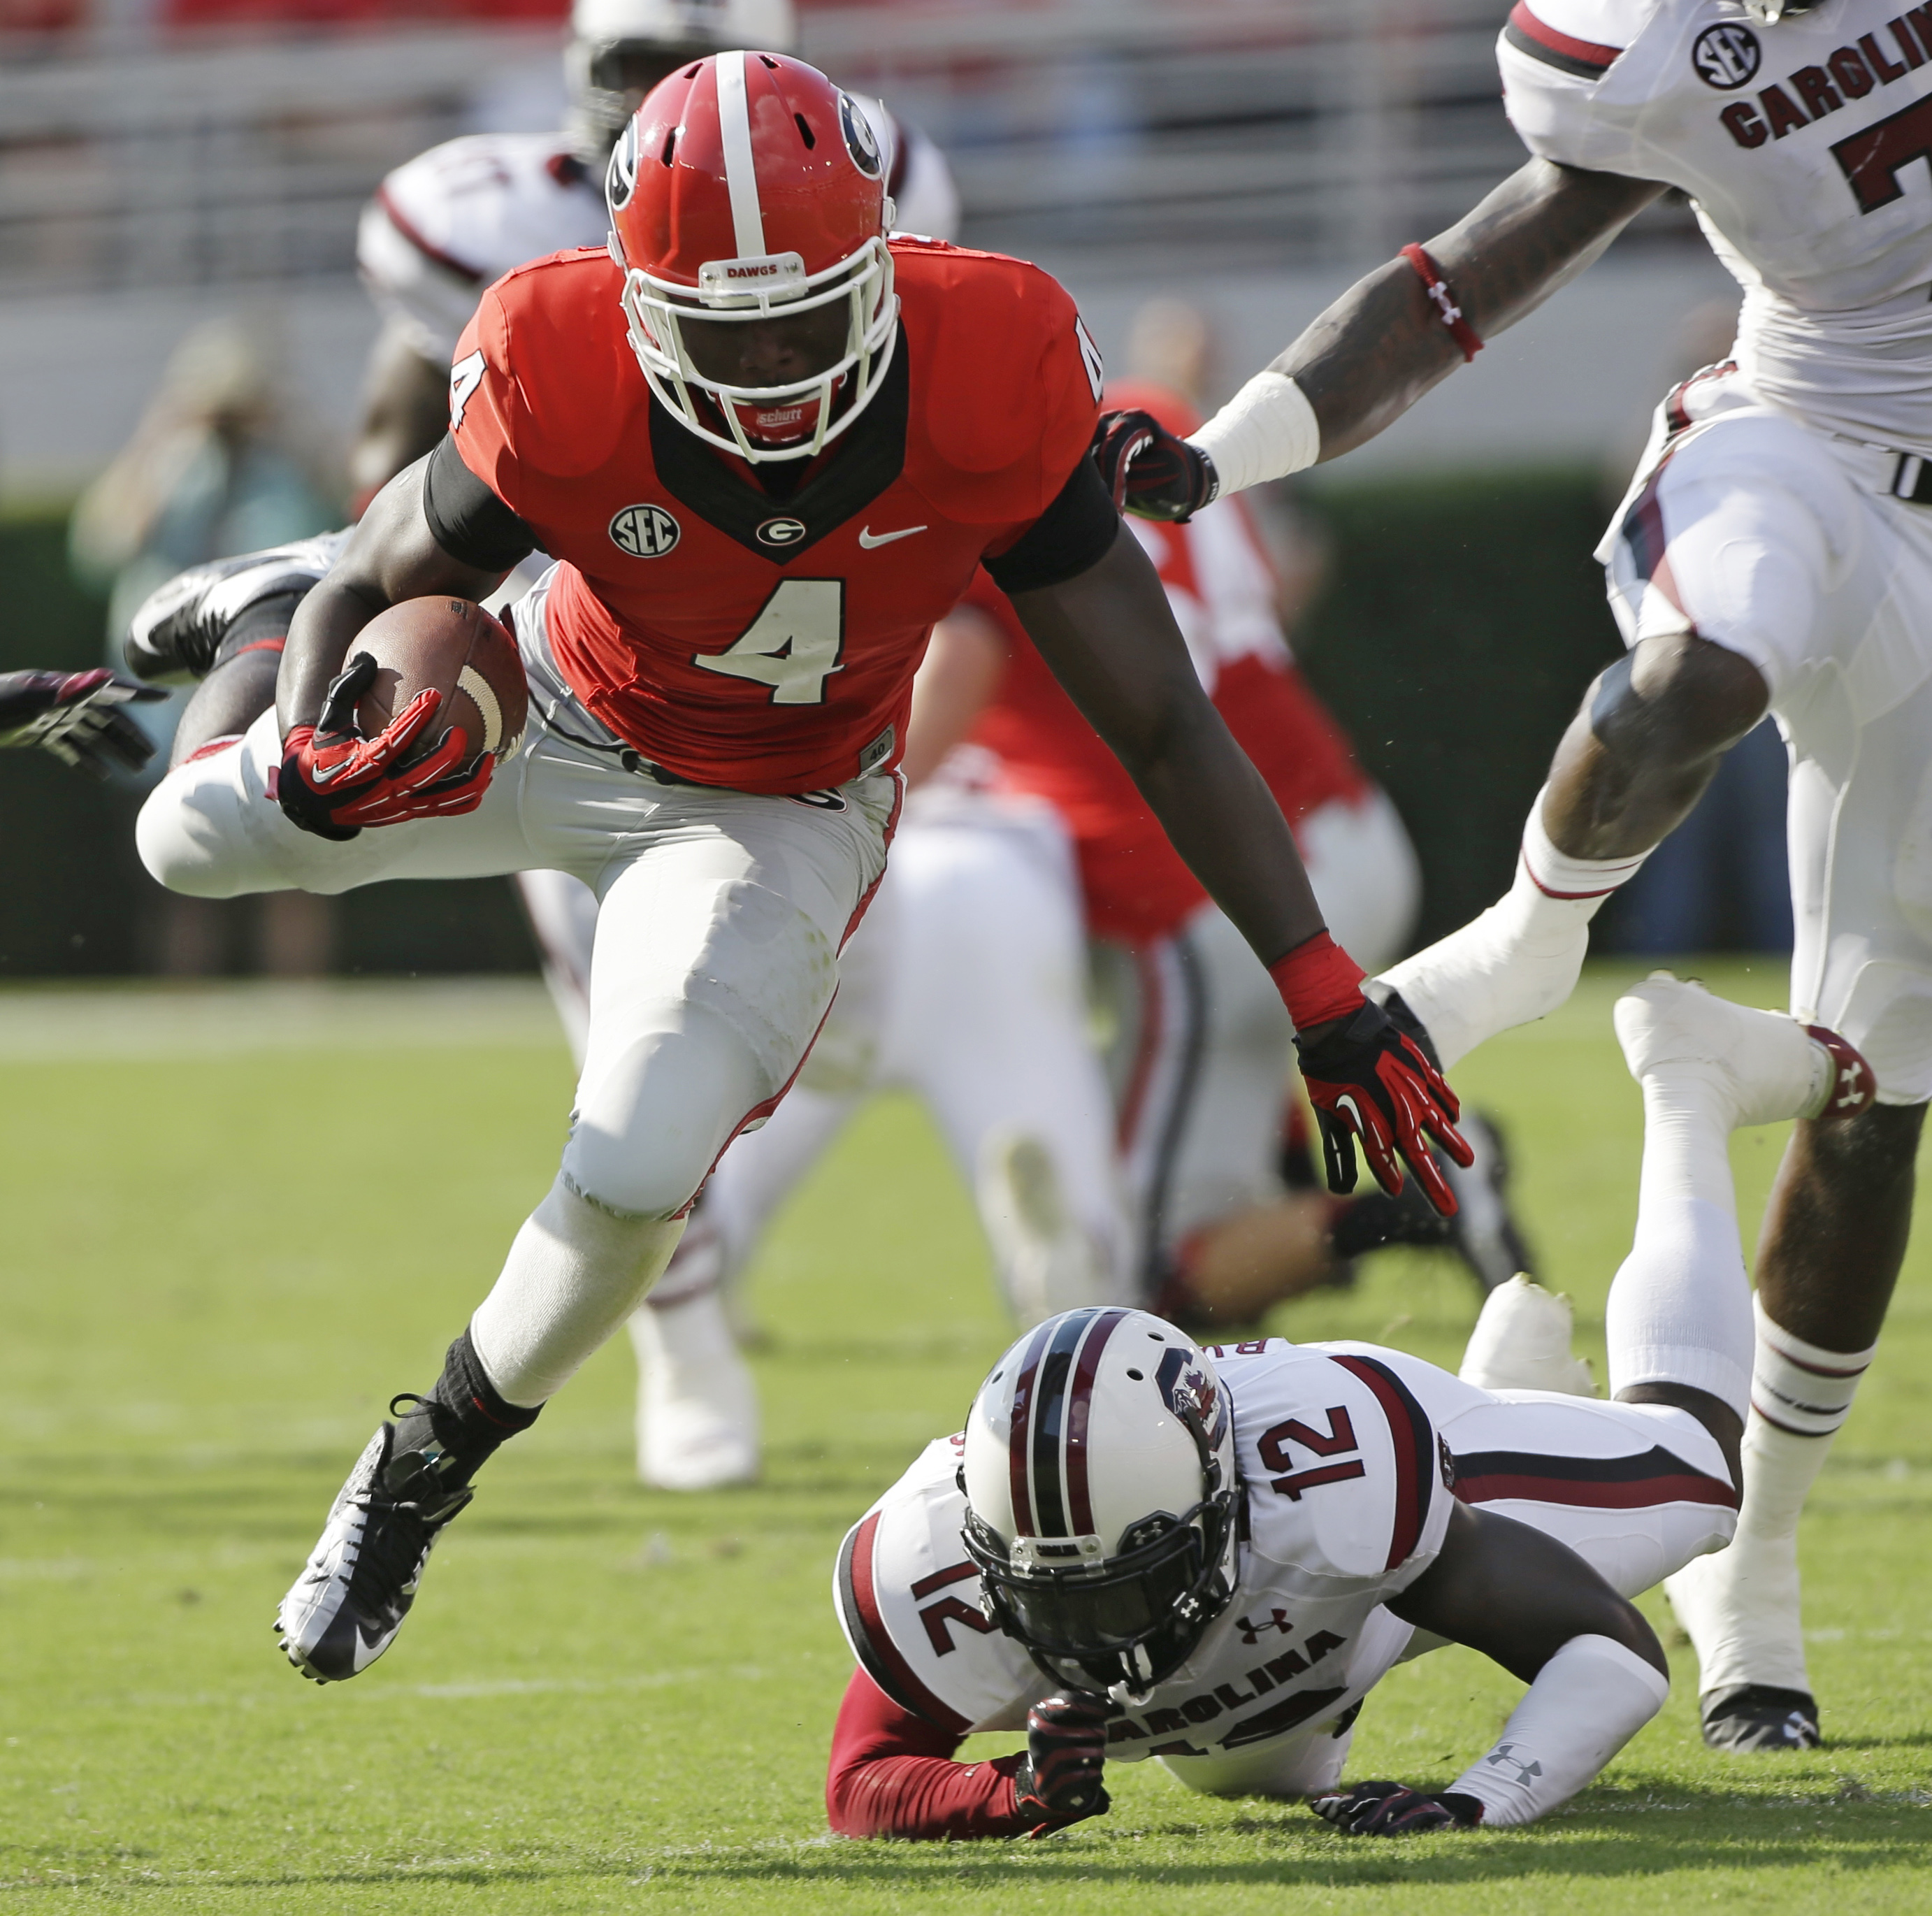 FILE - In this Saturday, Sept. 7, 2013,  file photo, Georgia running back Keith Marshall (4) gets by South Carolina safety Brison Williams (12) during the first half of an NCAA football game in Athens, Ga. Keith Marshall of Georgia and Marcus Marshall of